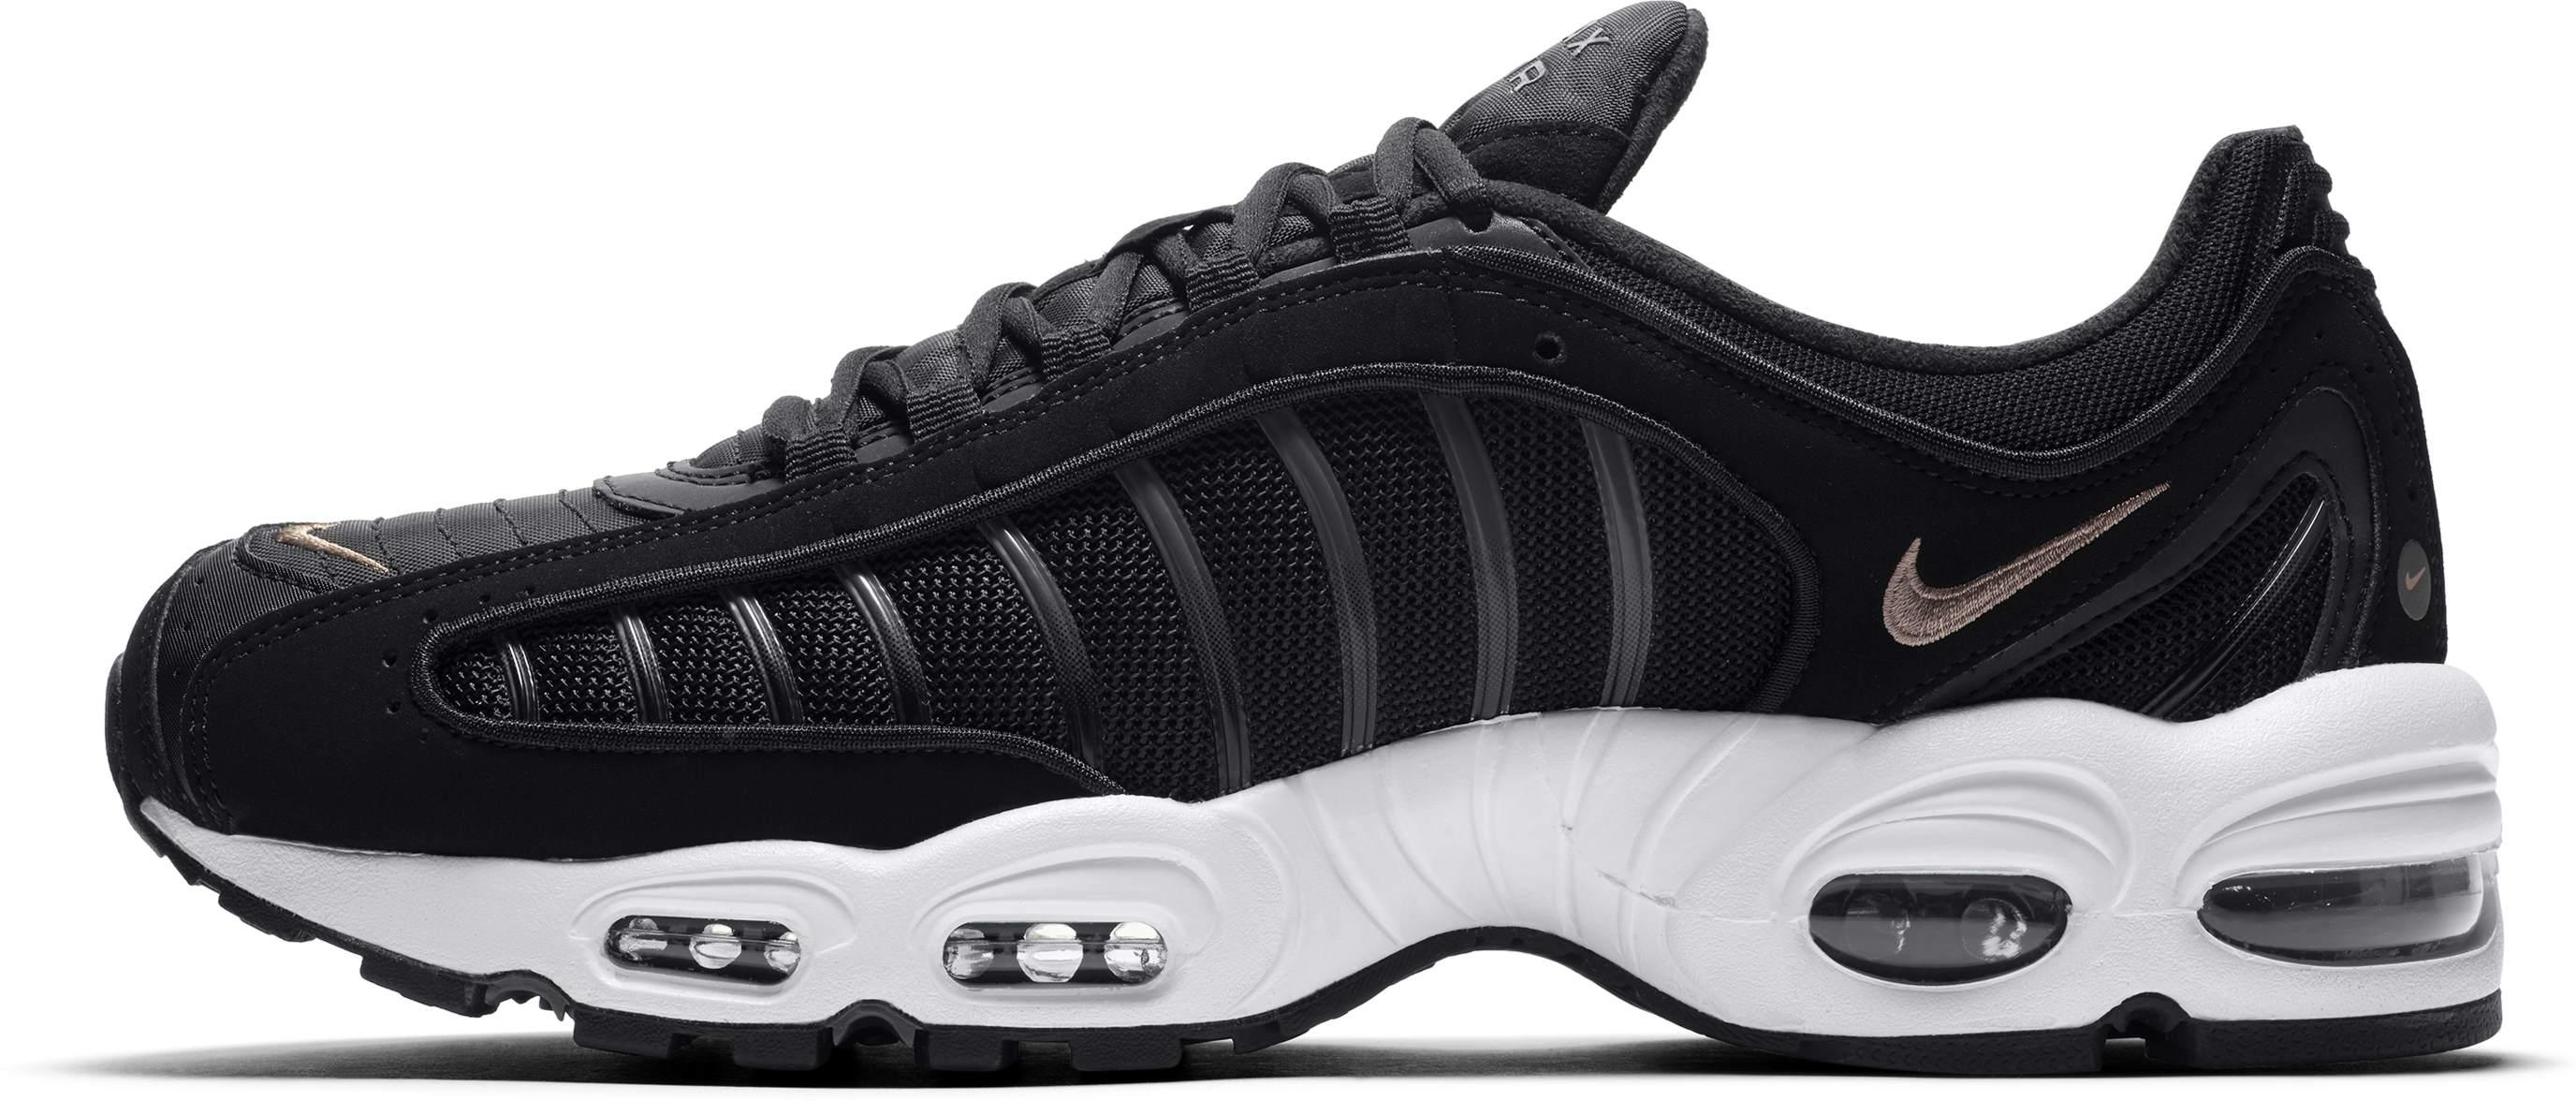 Nike Air Max Tailwind IV Black/Iron Grey/White/Khaki